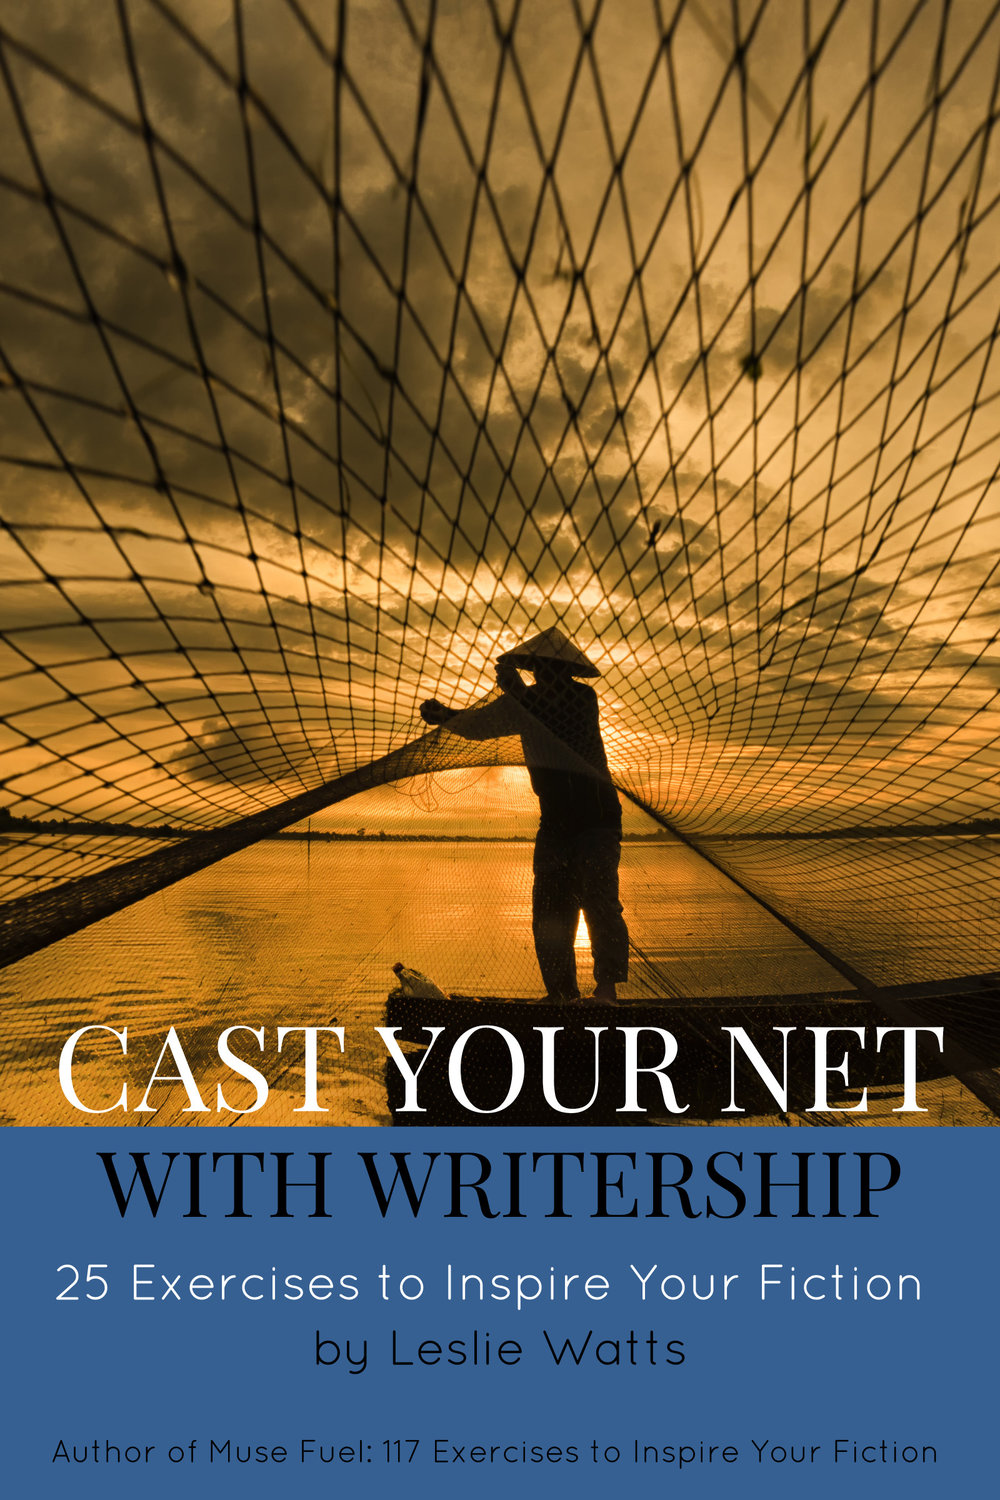 Cast Your Net with Writership , 25 Exercises to Inspire Your Fiction by Leslie Watts